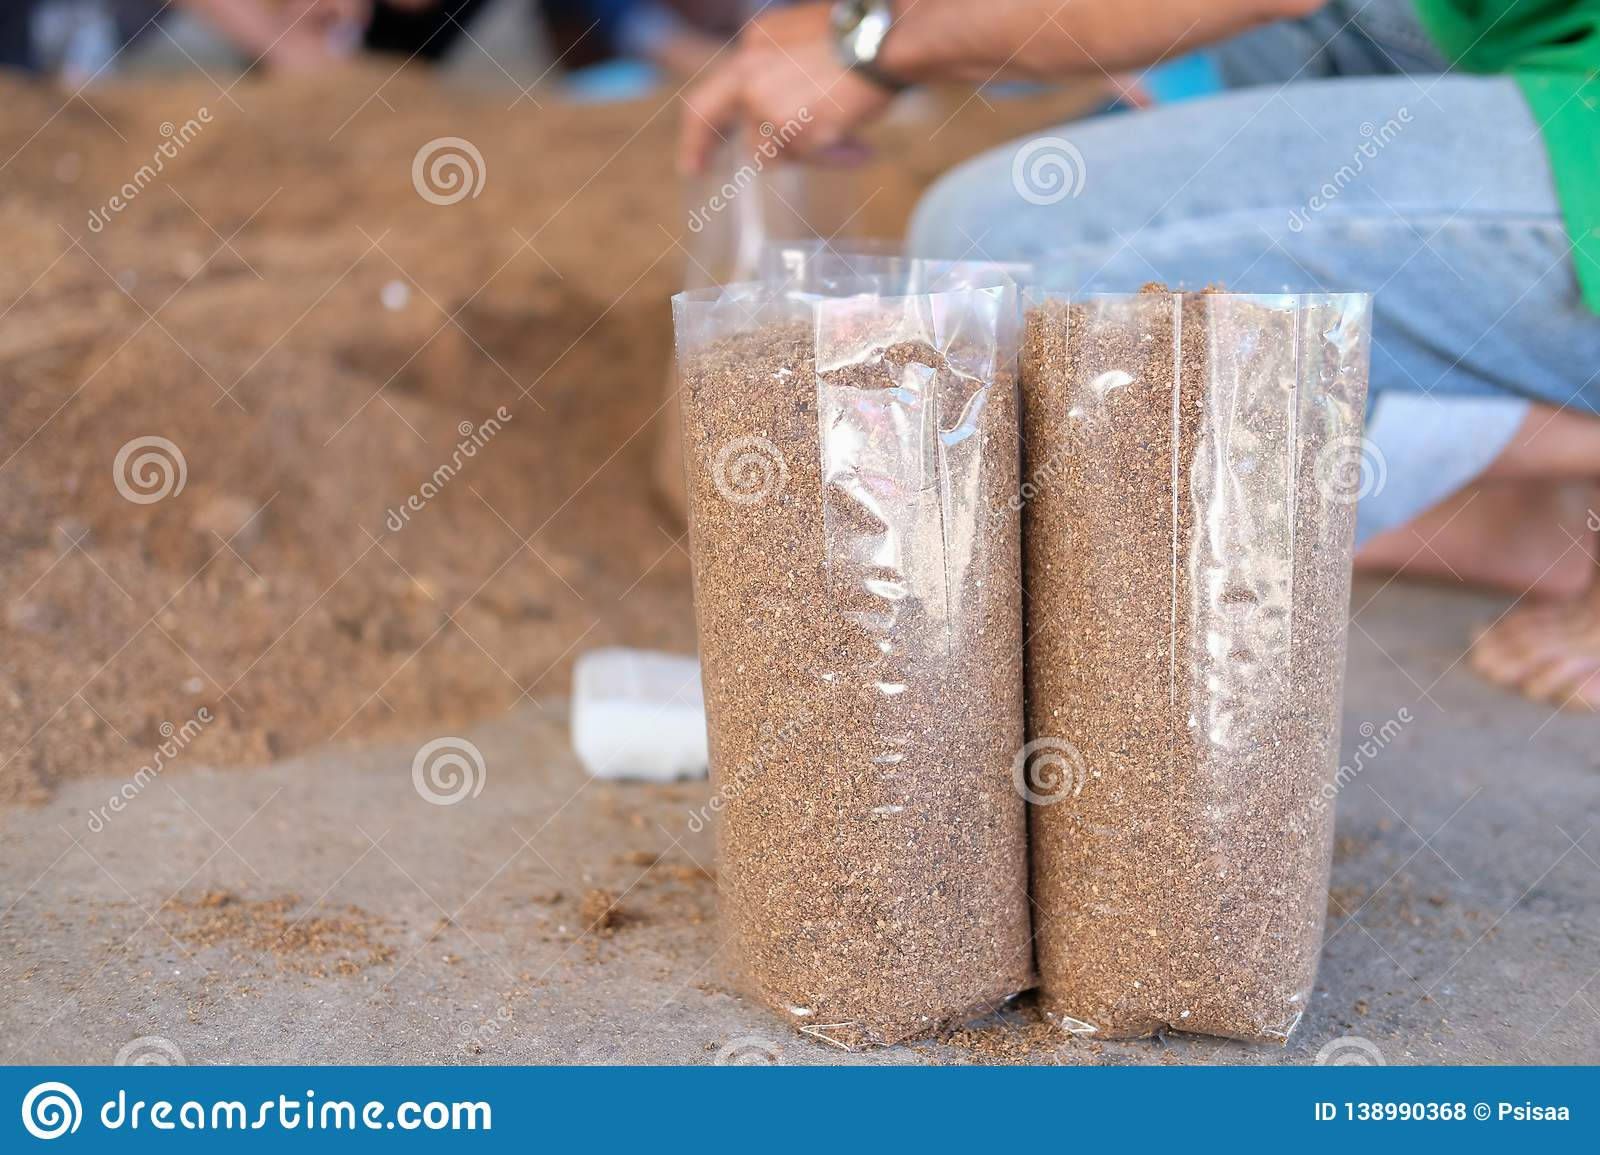 Artificial Substrate For Growing Mushroom In Bag In Farm